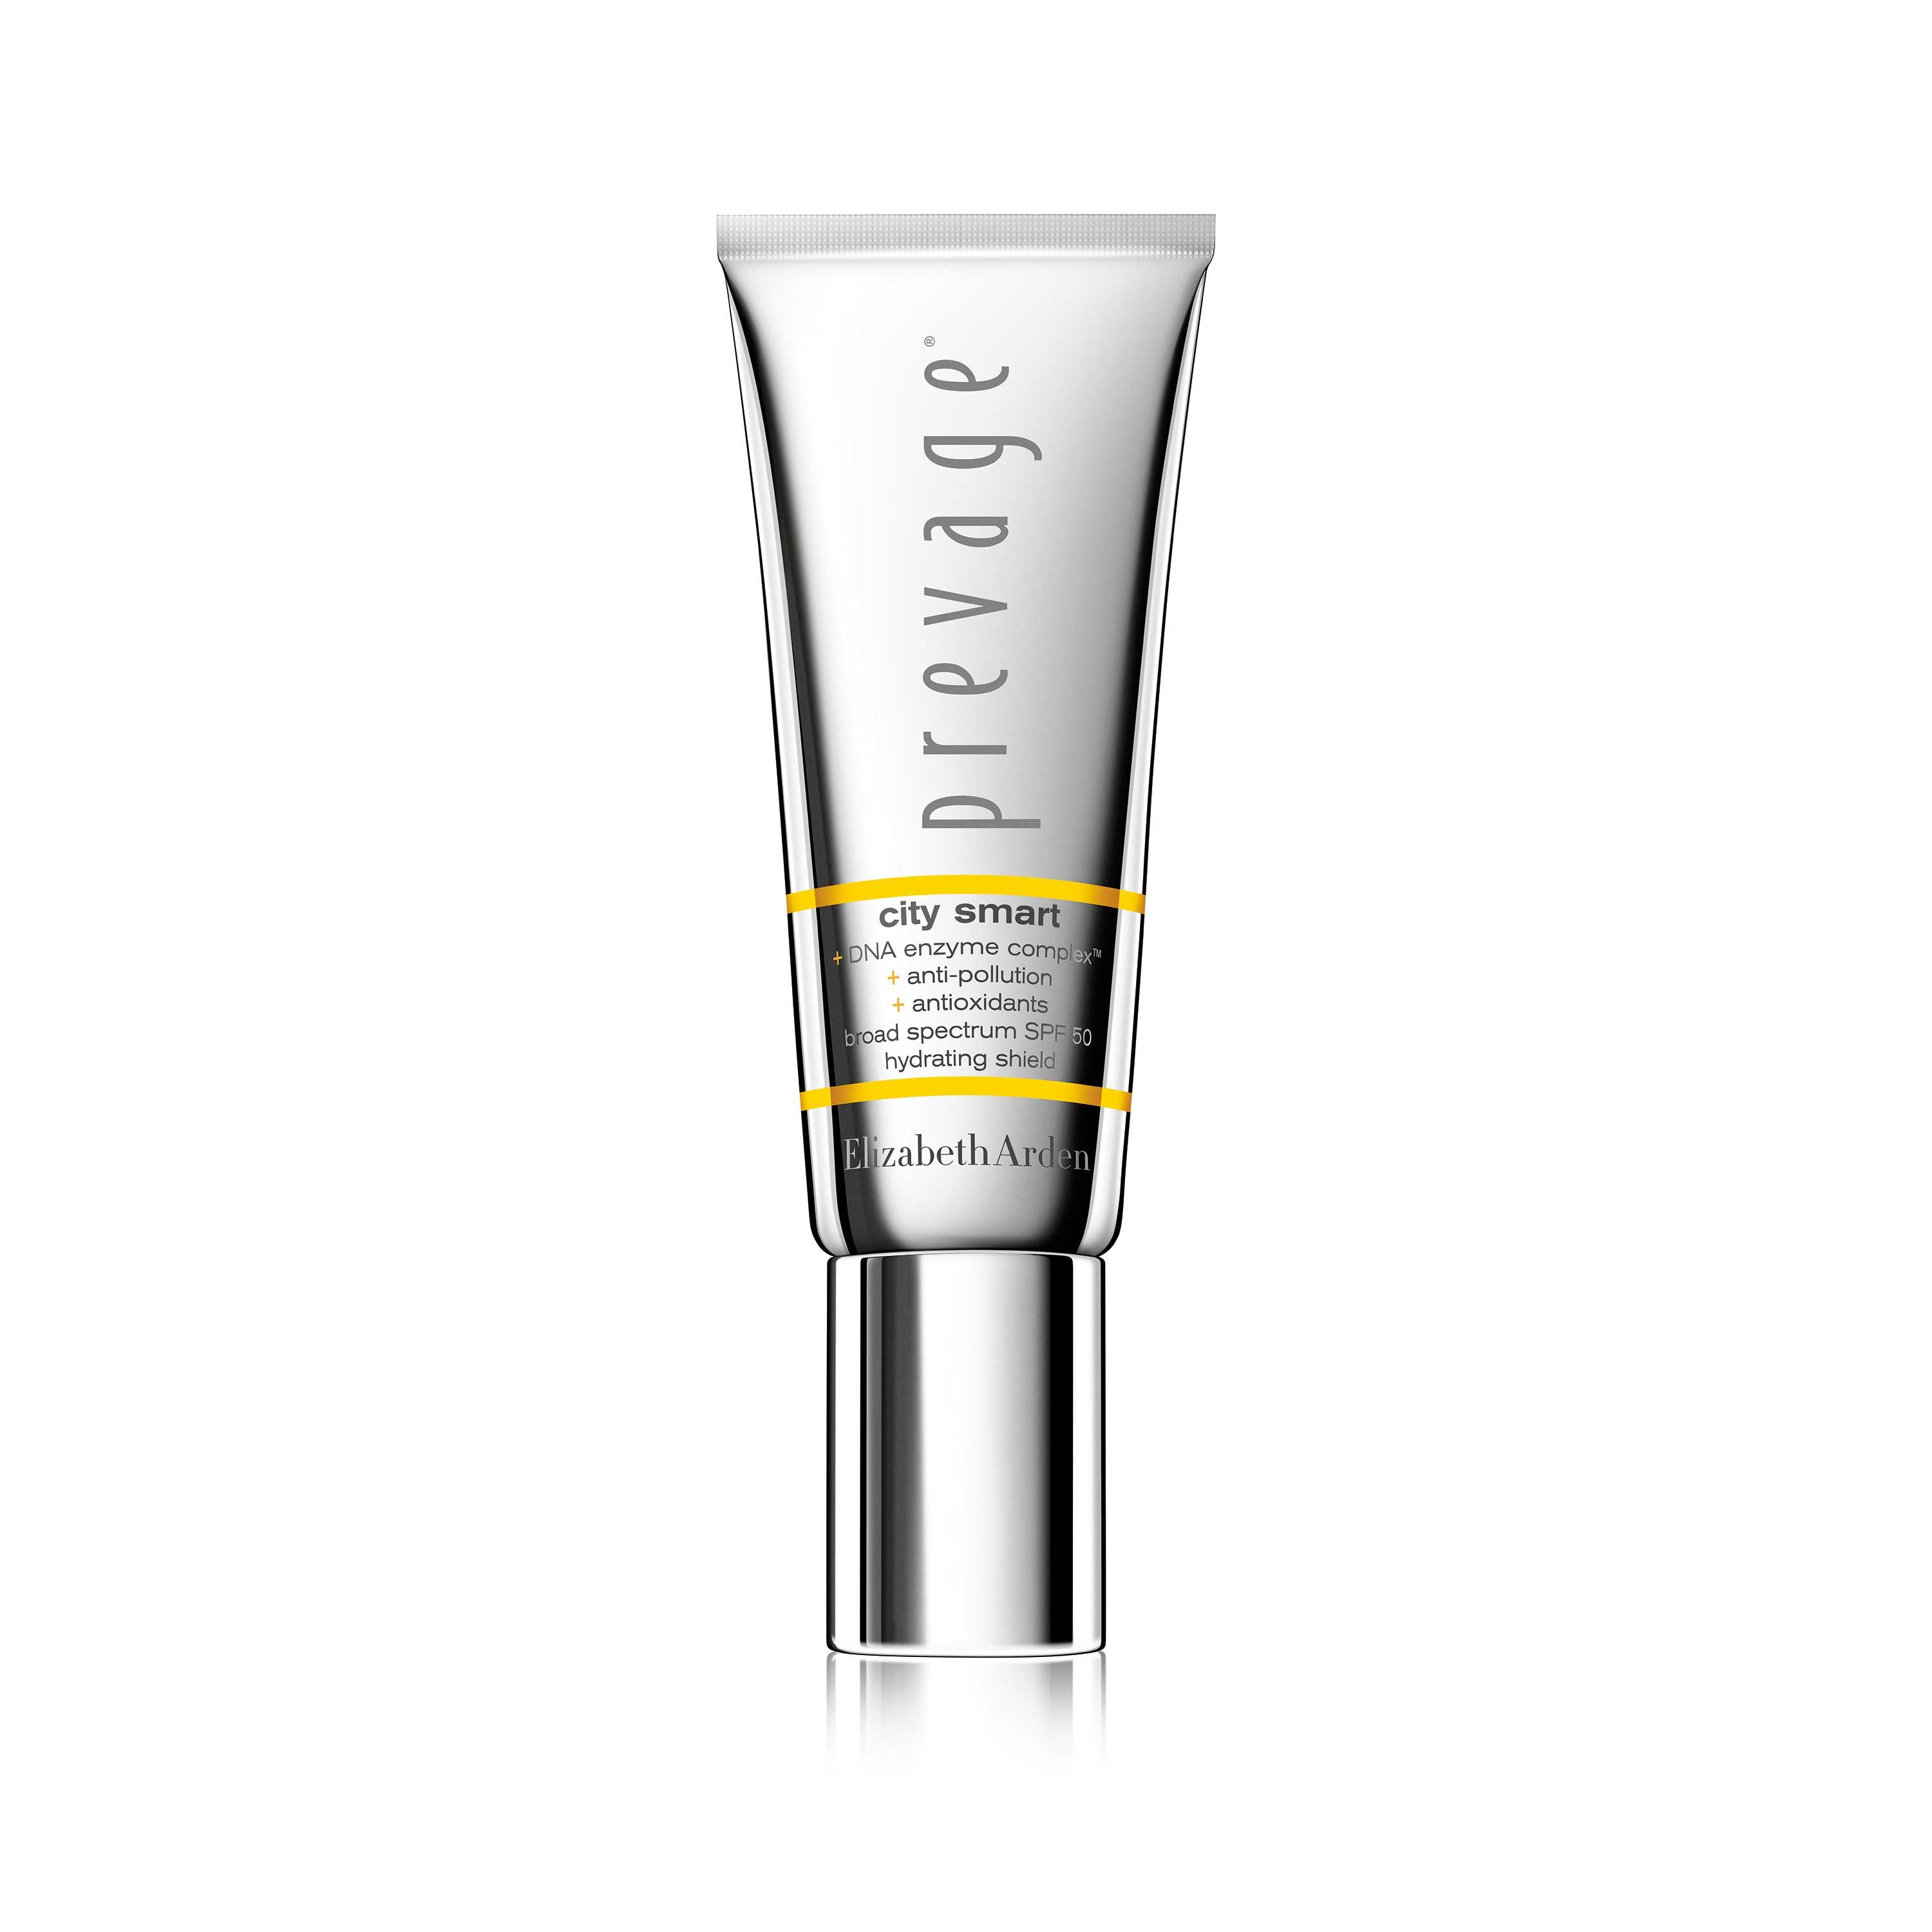 """<p><strong data-redactor-tag=""""strong"""" data-verified=""""redactor"""">Elizabeth Arden Prevage City Smart Broad Spectrum SPF 50 Hydrating Shield</strong><span class=""""redactor-invisible-space"""" data-verified=""""redactor"""" data-redactor-tag=""""span"""" data-redactor-class=""""redactor-invisible-space""""><strong data-redactor-tag=""""strong"""" data-verified=""""redactor""""></strong></span><br></p><p>I feel a little bit like Stefon, Bill Hader's club promoter character from<i data-redactor-tag=""""i"""">Saturday Night Live</i>'s Weekend Update, when talking about this product because…it has everything. Antioxidants, including a trio of tried-and-true ones beloved by dermatologists: green tea, idebenone, and ferulic acid. A mineral SPF of 50. A slippery texture that acts as a makeup primer. A slight tint to even out discoloration. An airless pump to keep the formula finger—and thus dirt—free. And a finish that leaves skin glossy and dewy (though, admittedly, this does not last for longer than an hour or so). It's not quite thick enough to double as a moisturizer, but it has eliminated the need for foundation on weekend days, when I tend to wear less makeup. It's not New York's hottest club, but it's at the edge of my shelf.</p><p>$68,<a href=""""http://www.elizabetharden.com/prevage-city-smart-hydrating-shield-1001A0100498.html?cgid=city-smart"""" target=""""_blank"""" data-tracking-id=""""recirc-text-link"""">elizabetharden.com</a> </p>"""